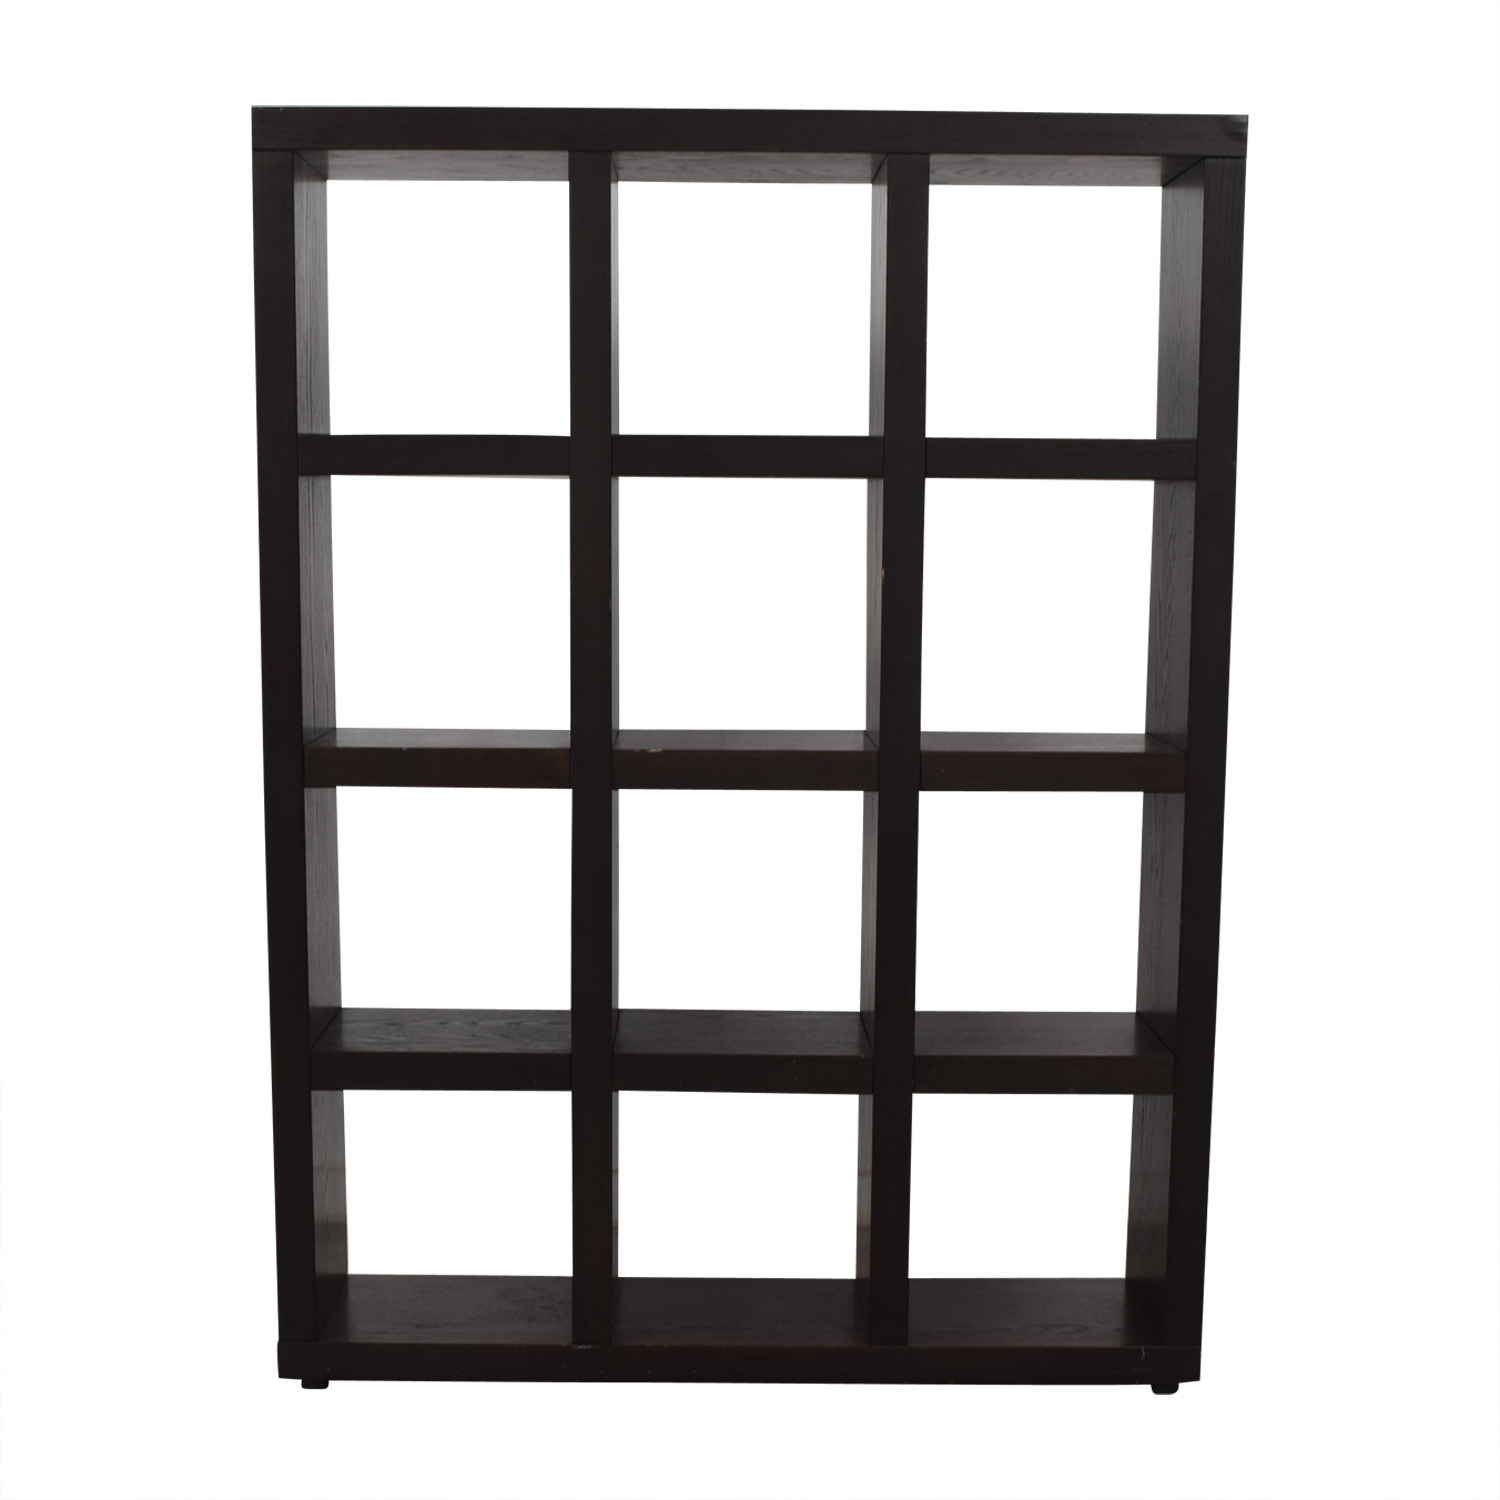 West Elm Tall Black Cube Bookshelf / Storage